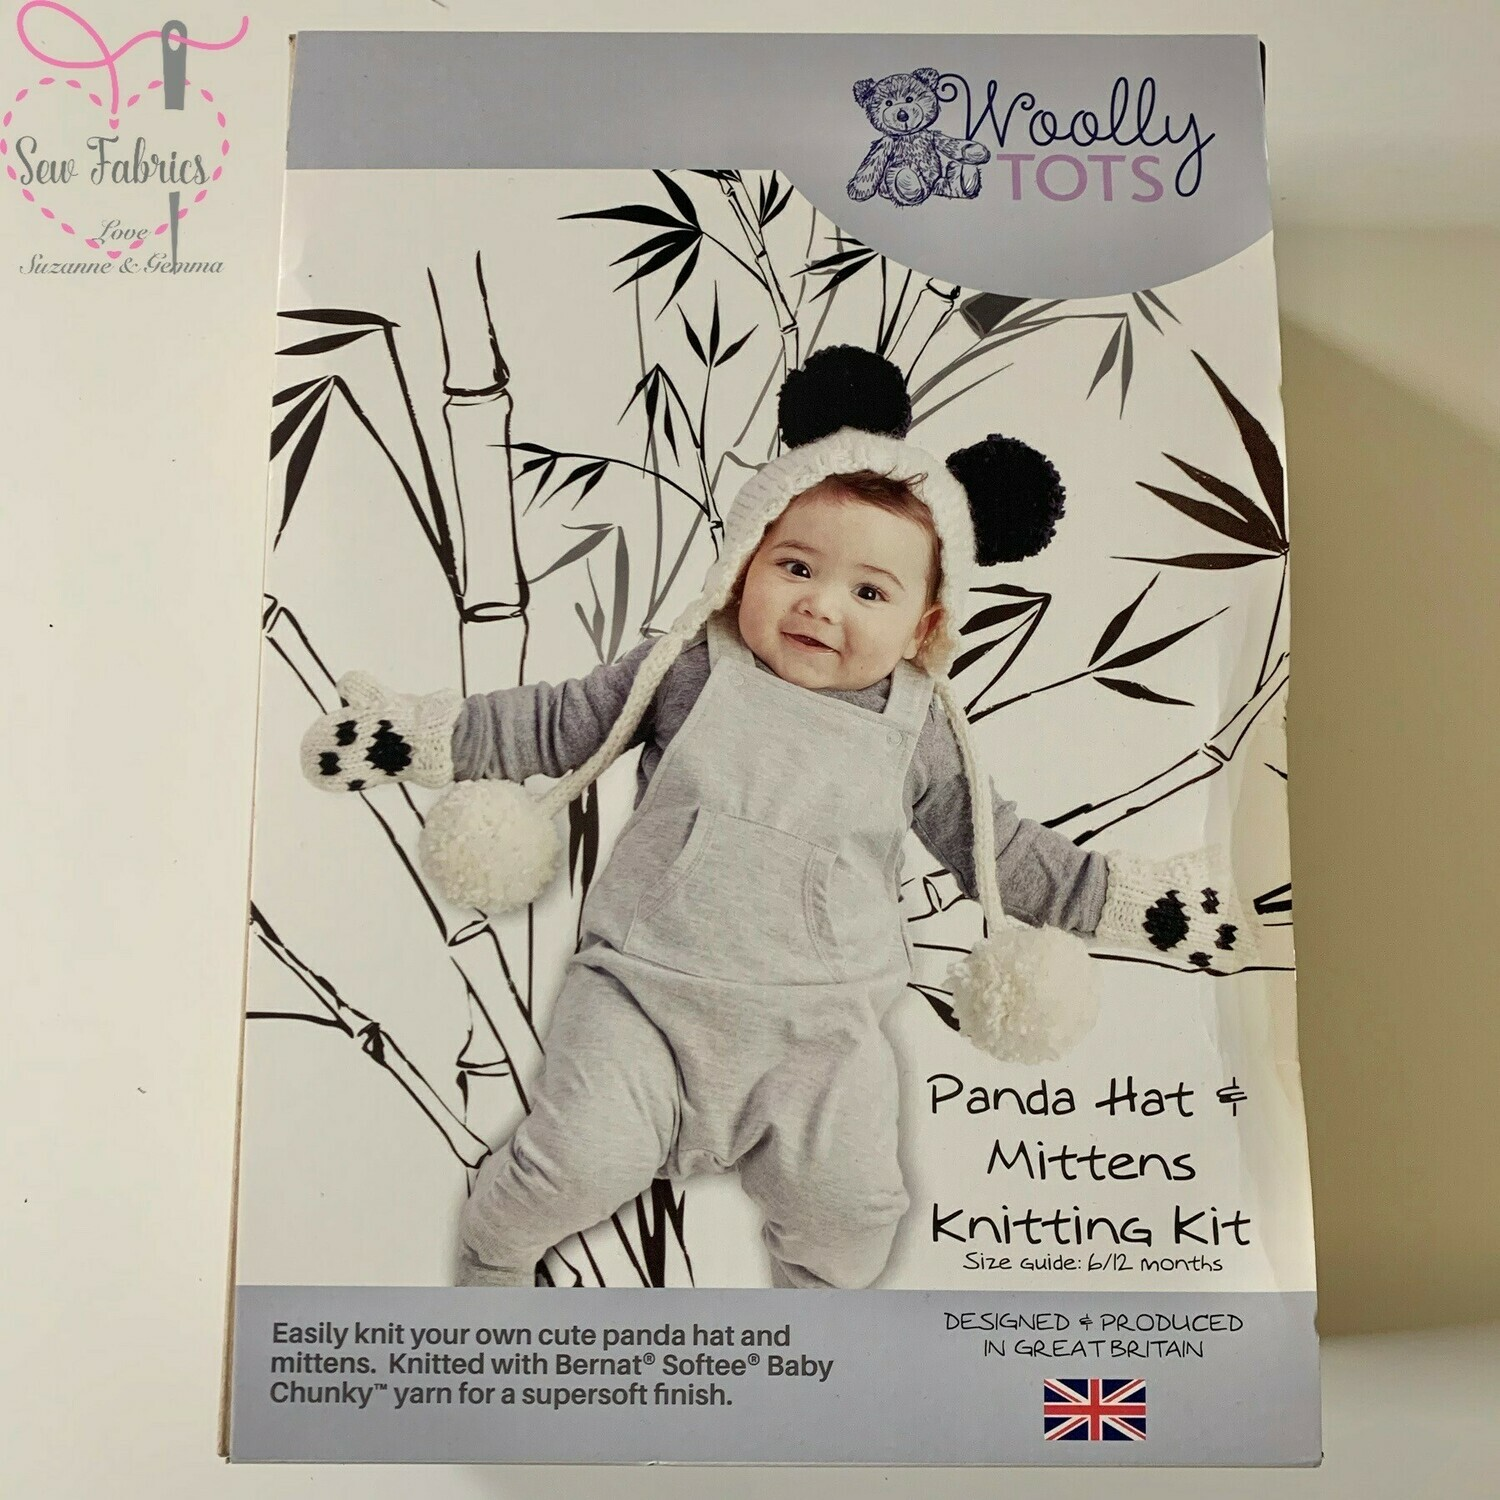 Woolly Tots Panda Hat and Mittens Knitting Kit